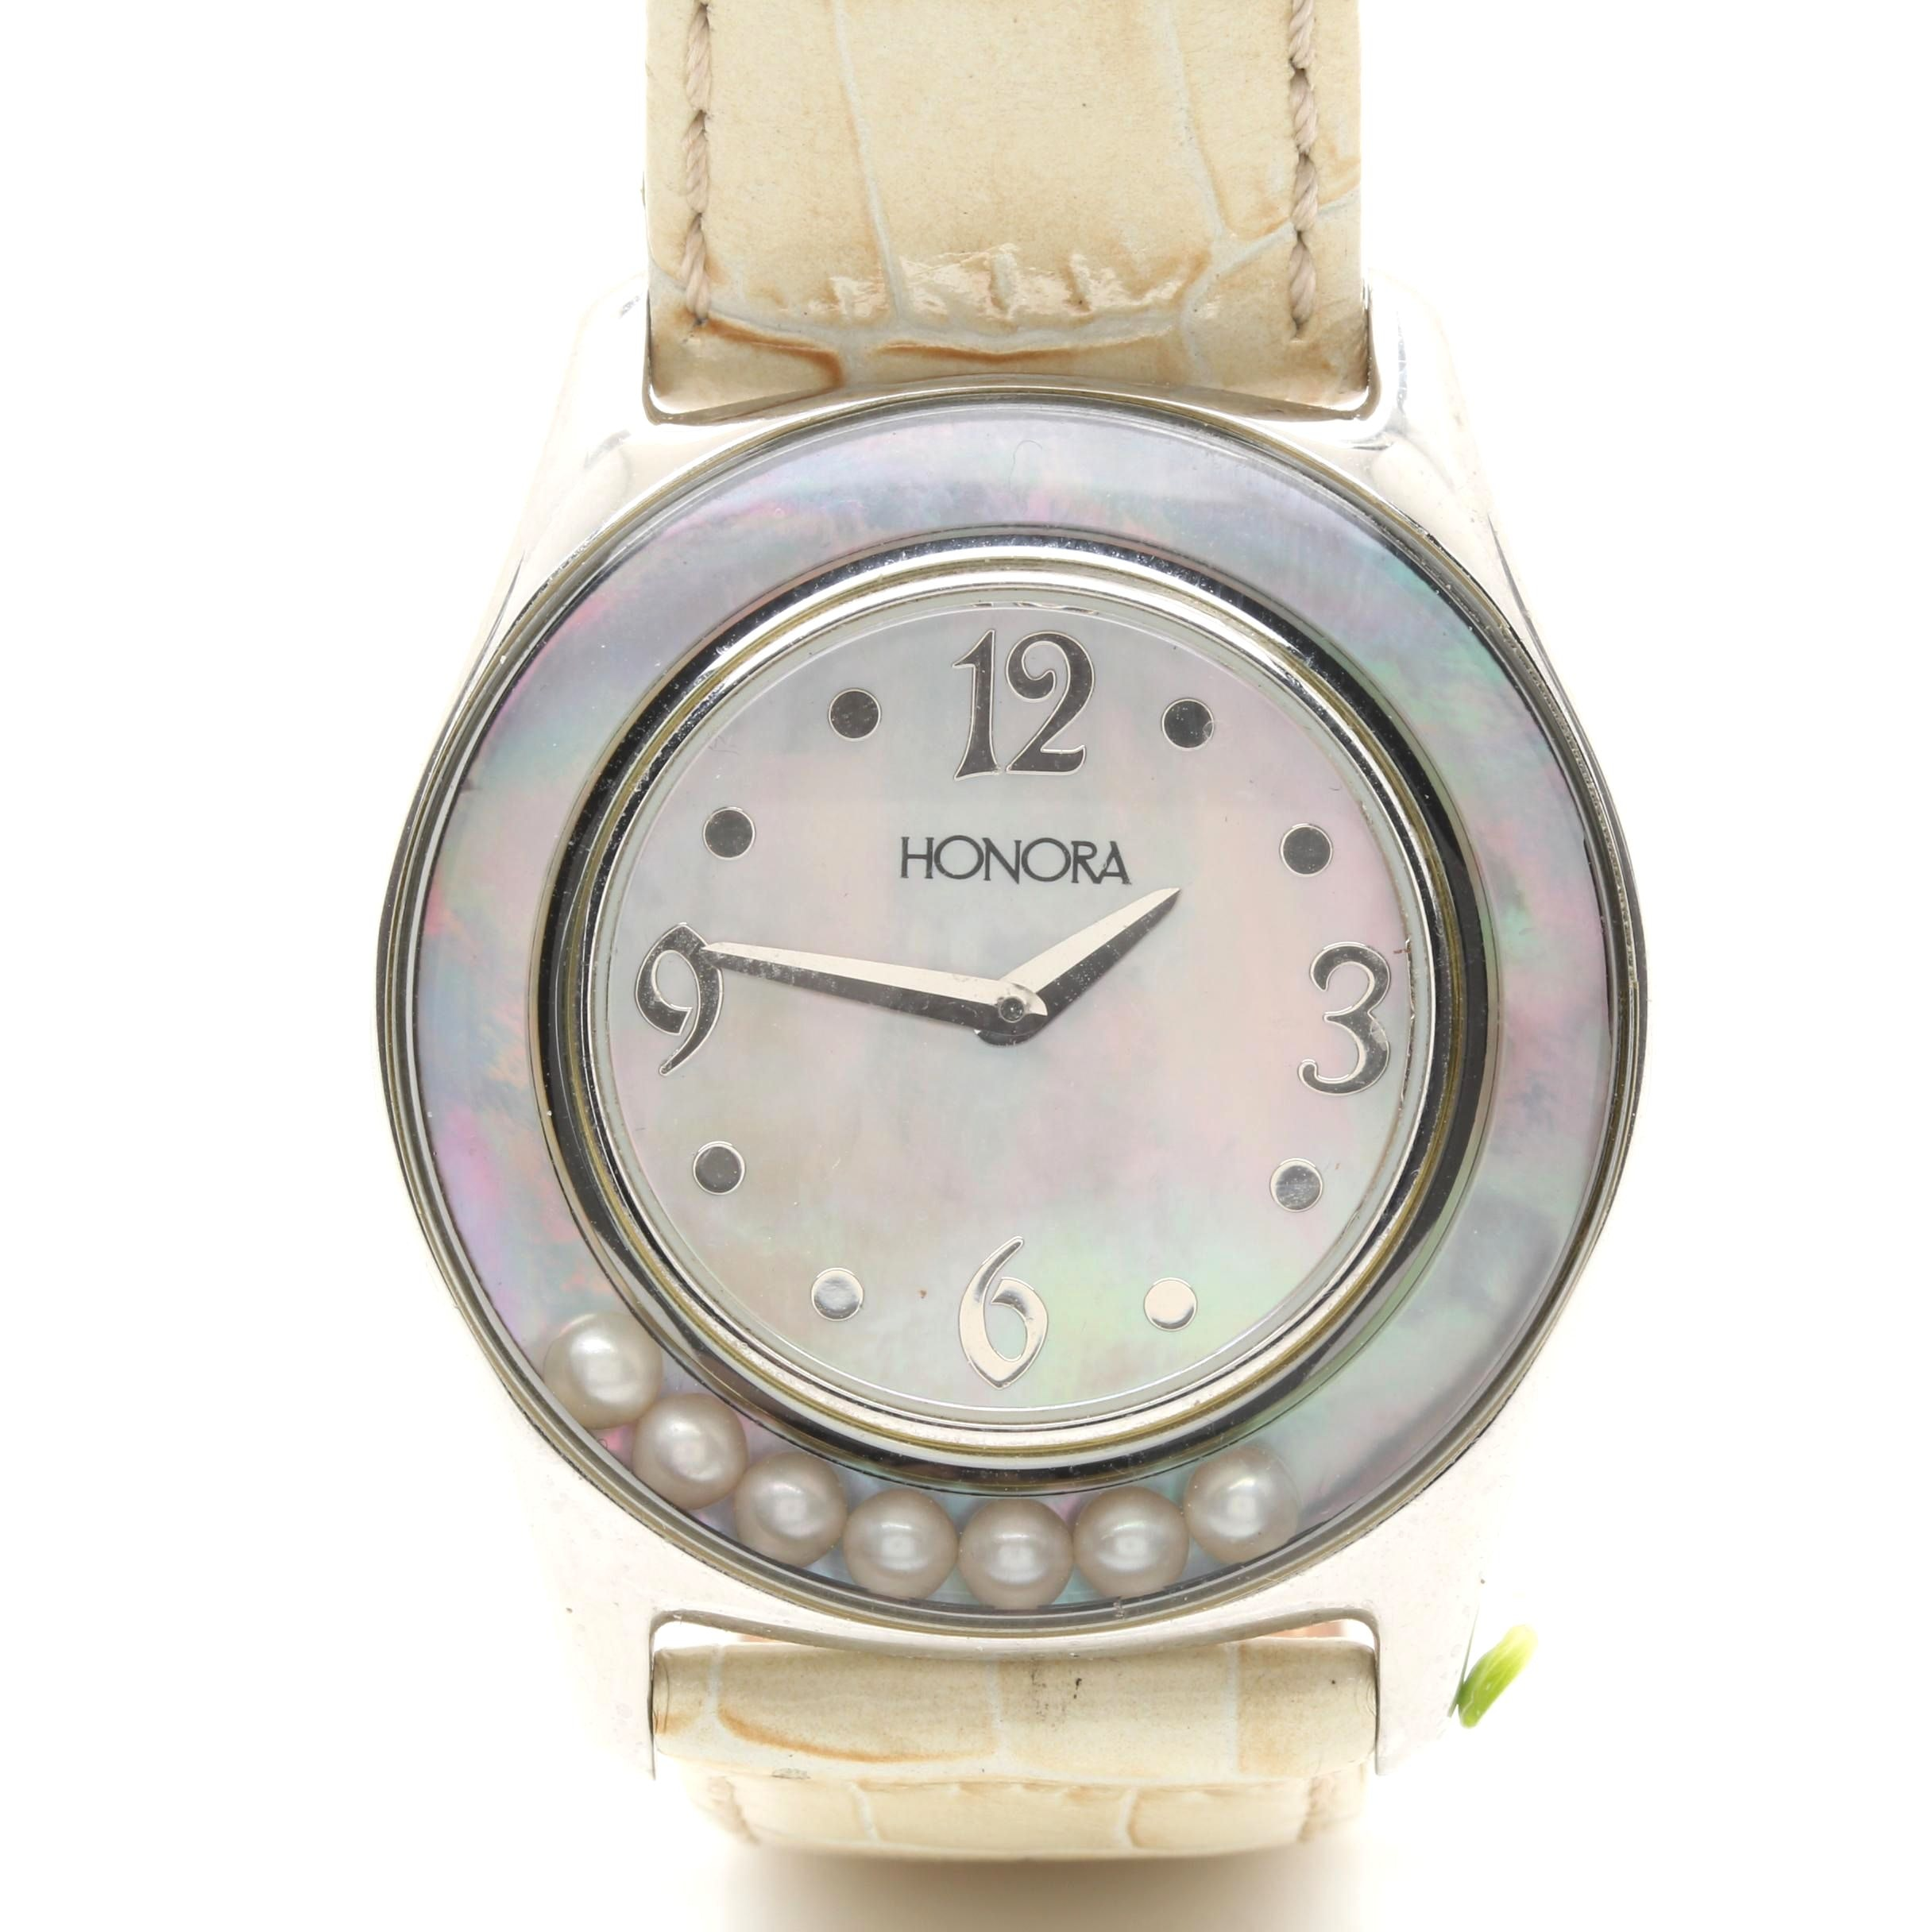 Honora Stainless Steel Analog Wristwatch with Mother of Pearl Dial